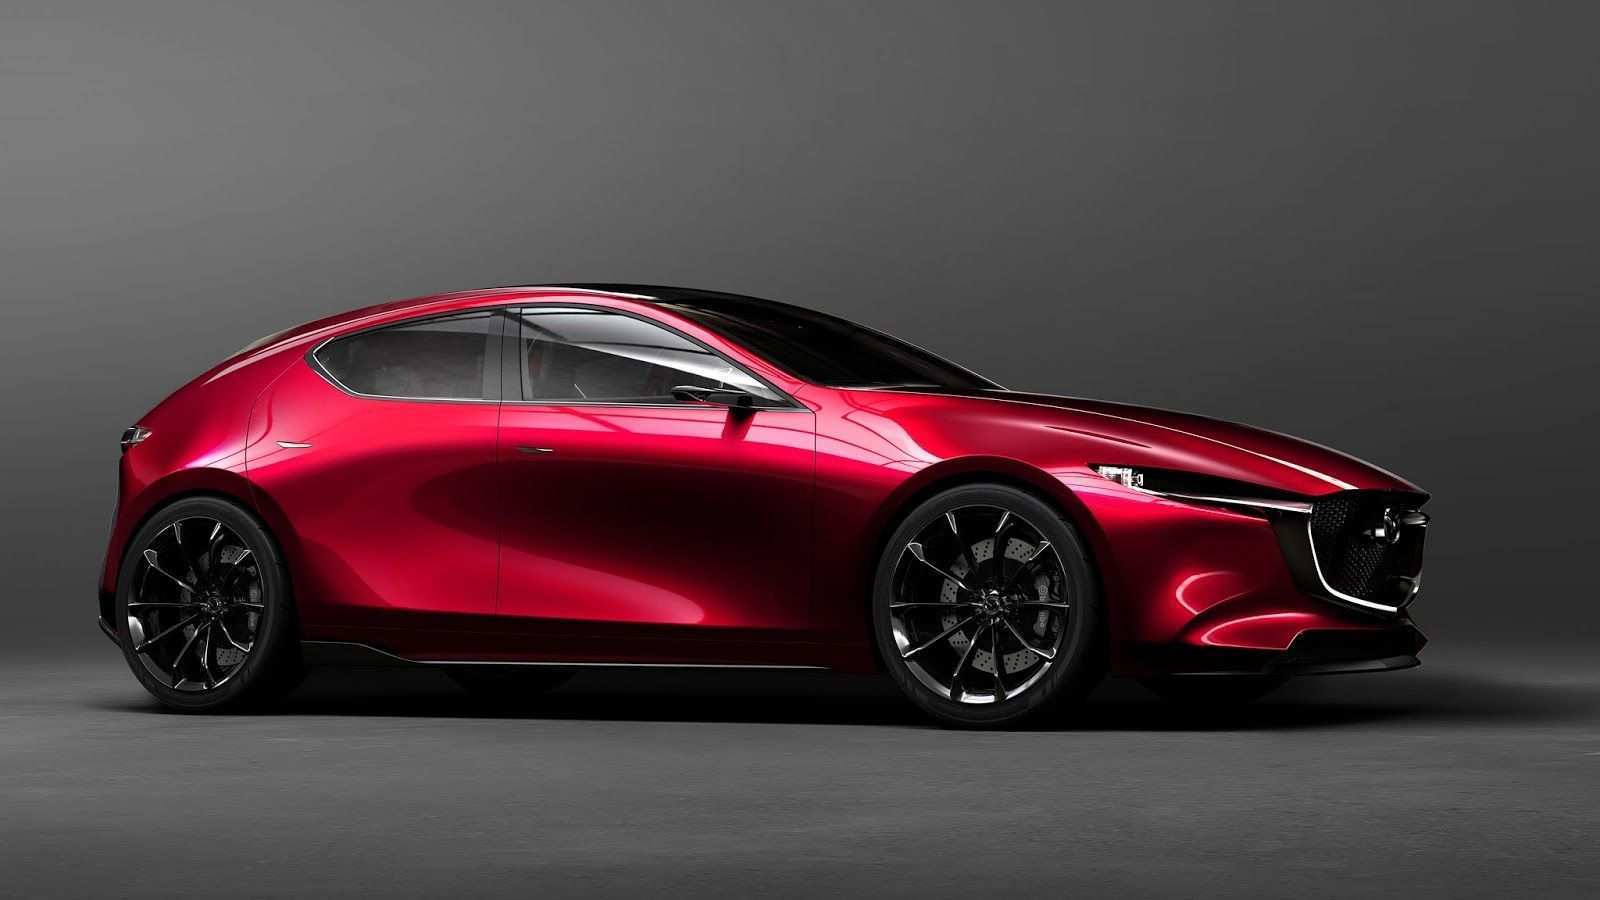 85 All New Xe Mazda 3 2019 Release Date And Concept